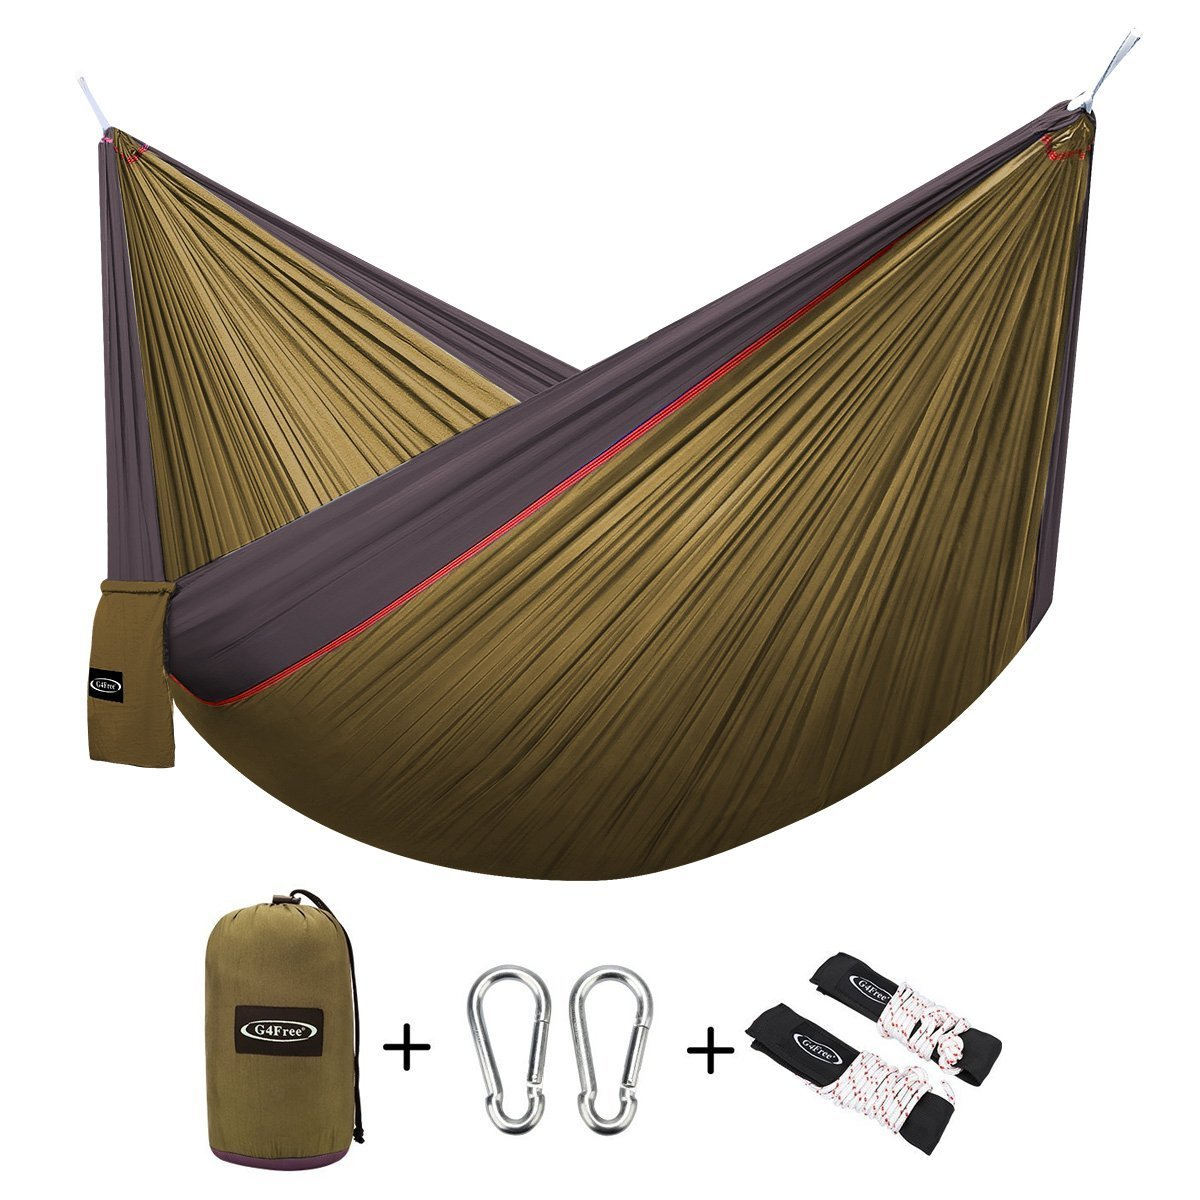 G4free Double Camping Hammock 2 Person Best Offer Reviews